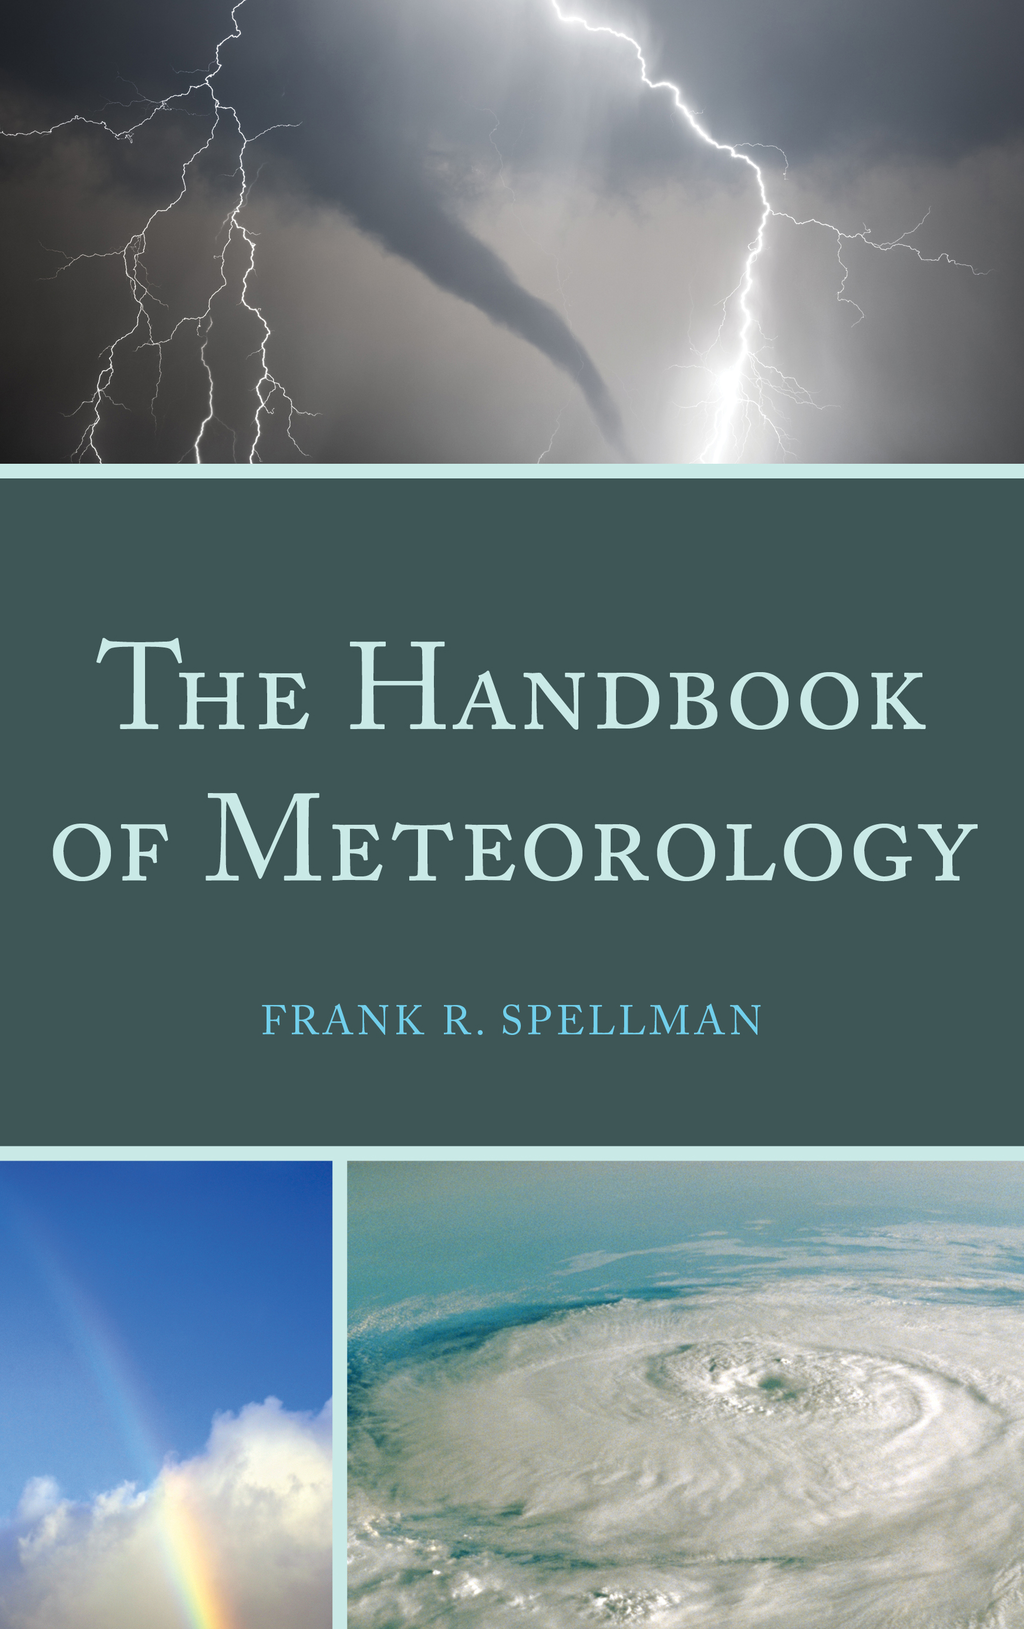 The Handbook of Meteorology